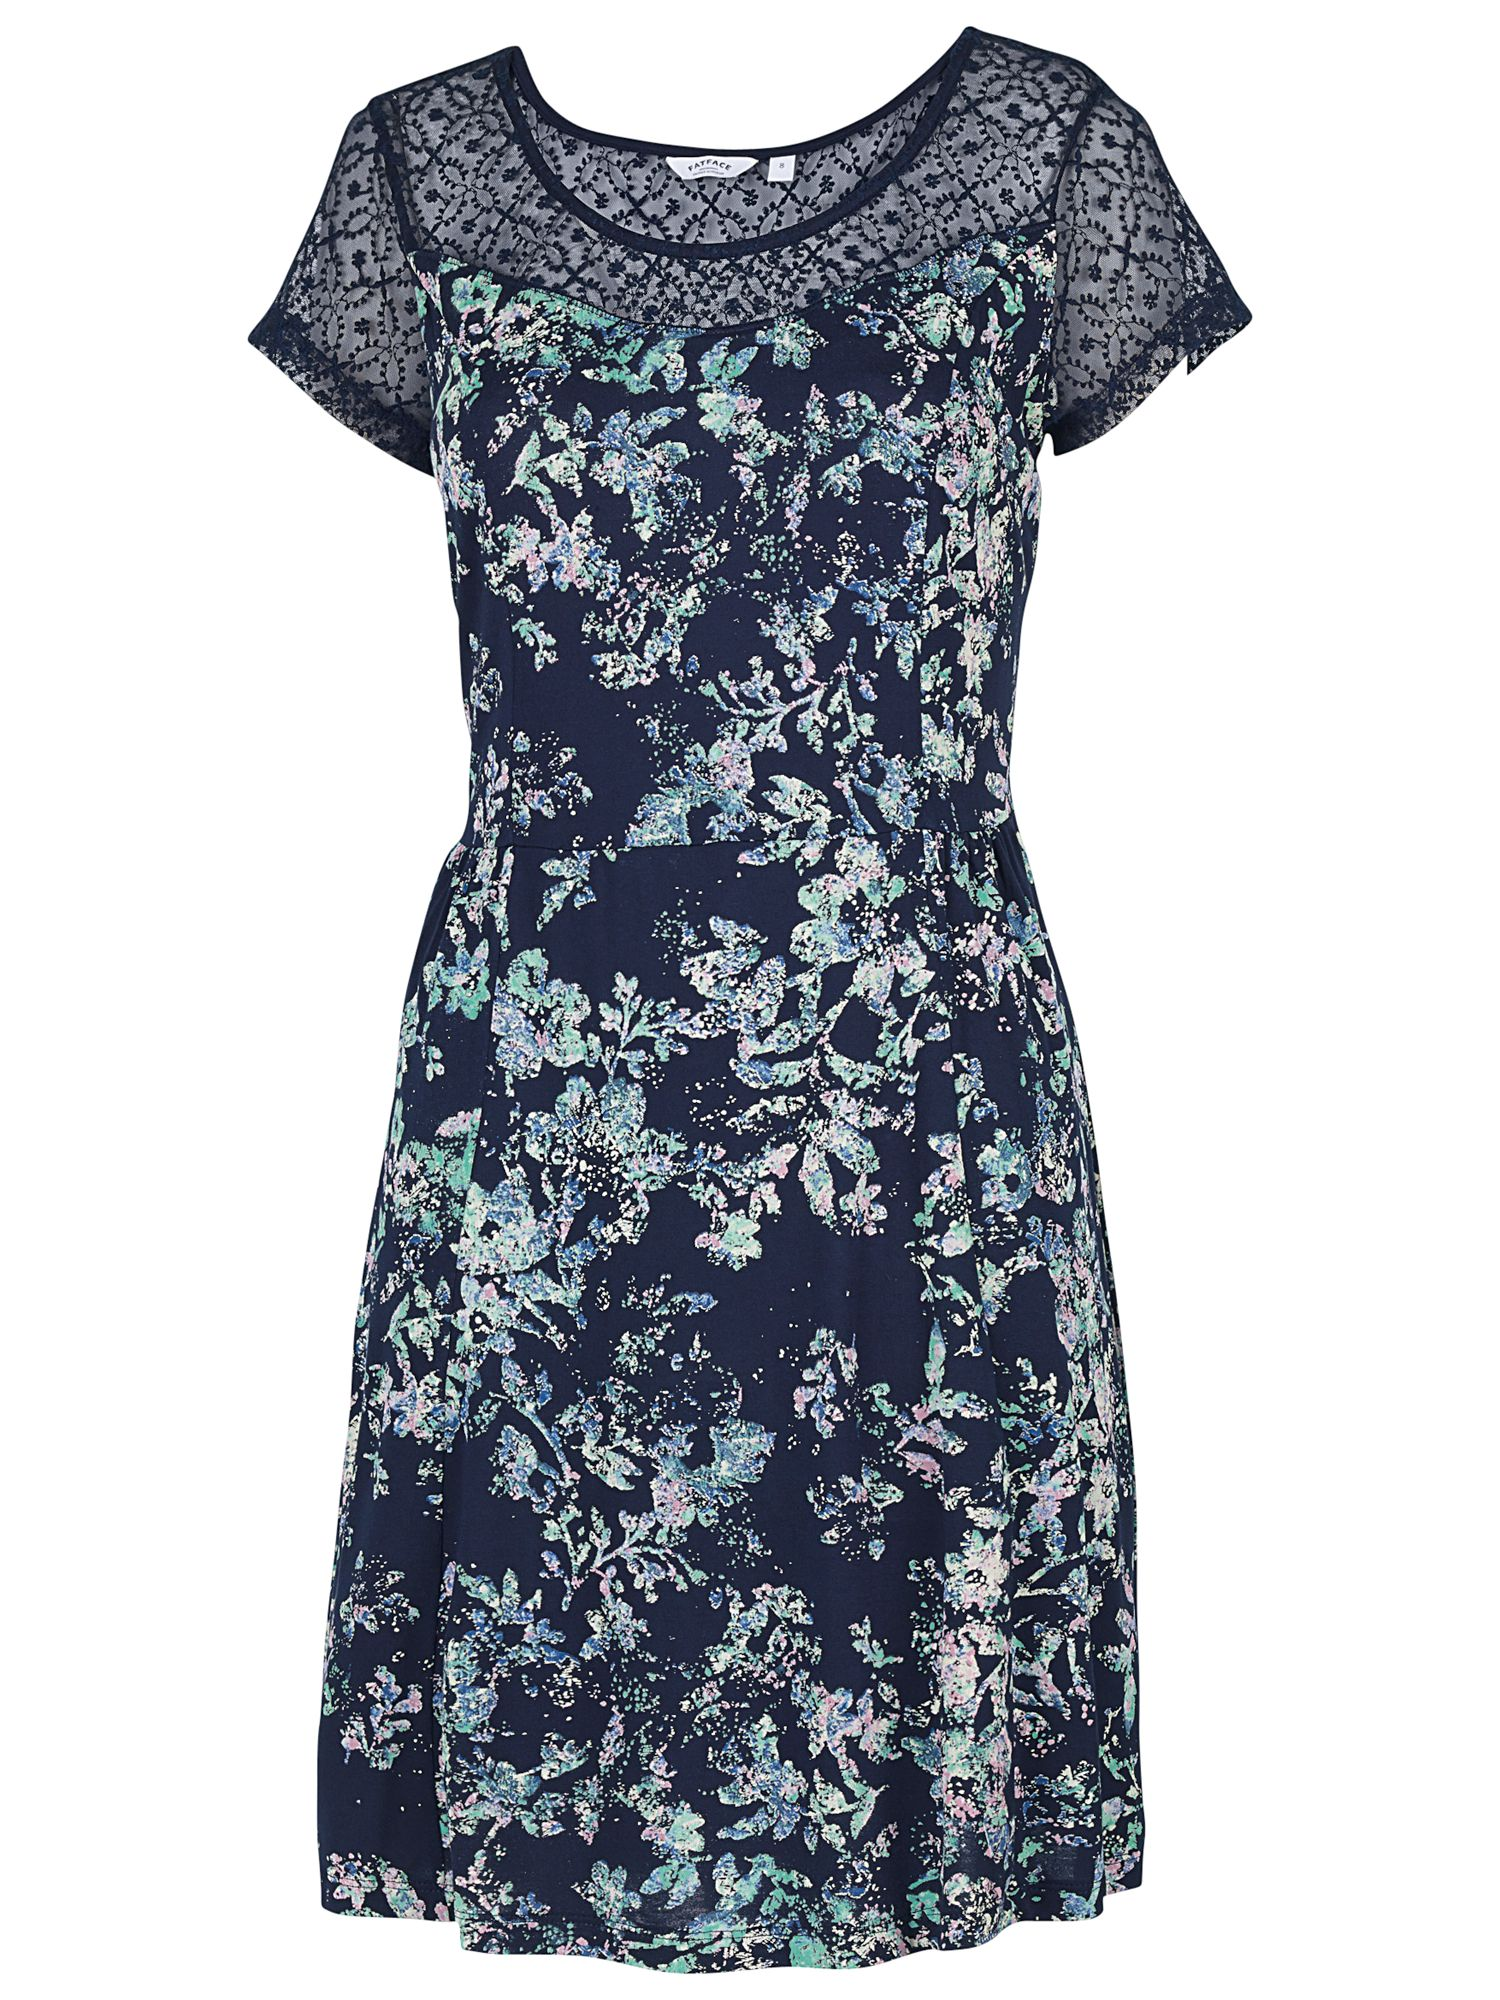 fat face paignton spray floral dress navy, fat, face, paignton, spray, floral, dress, navy, fat face, women, brands a-k, inactive womenswear, womens dresses, 1855107